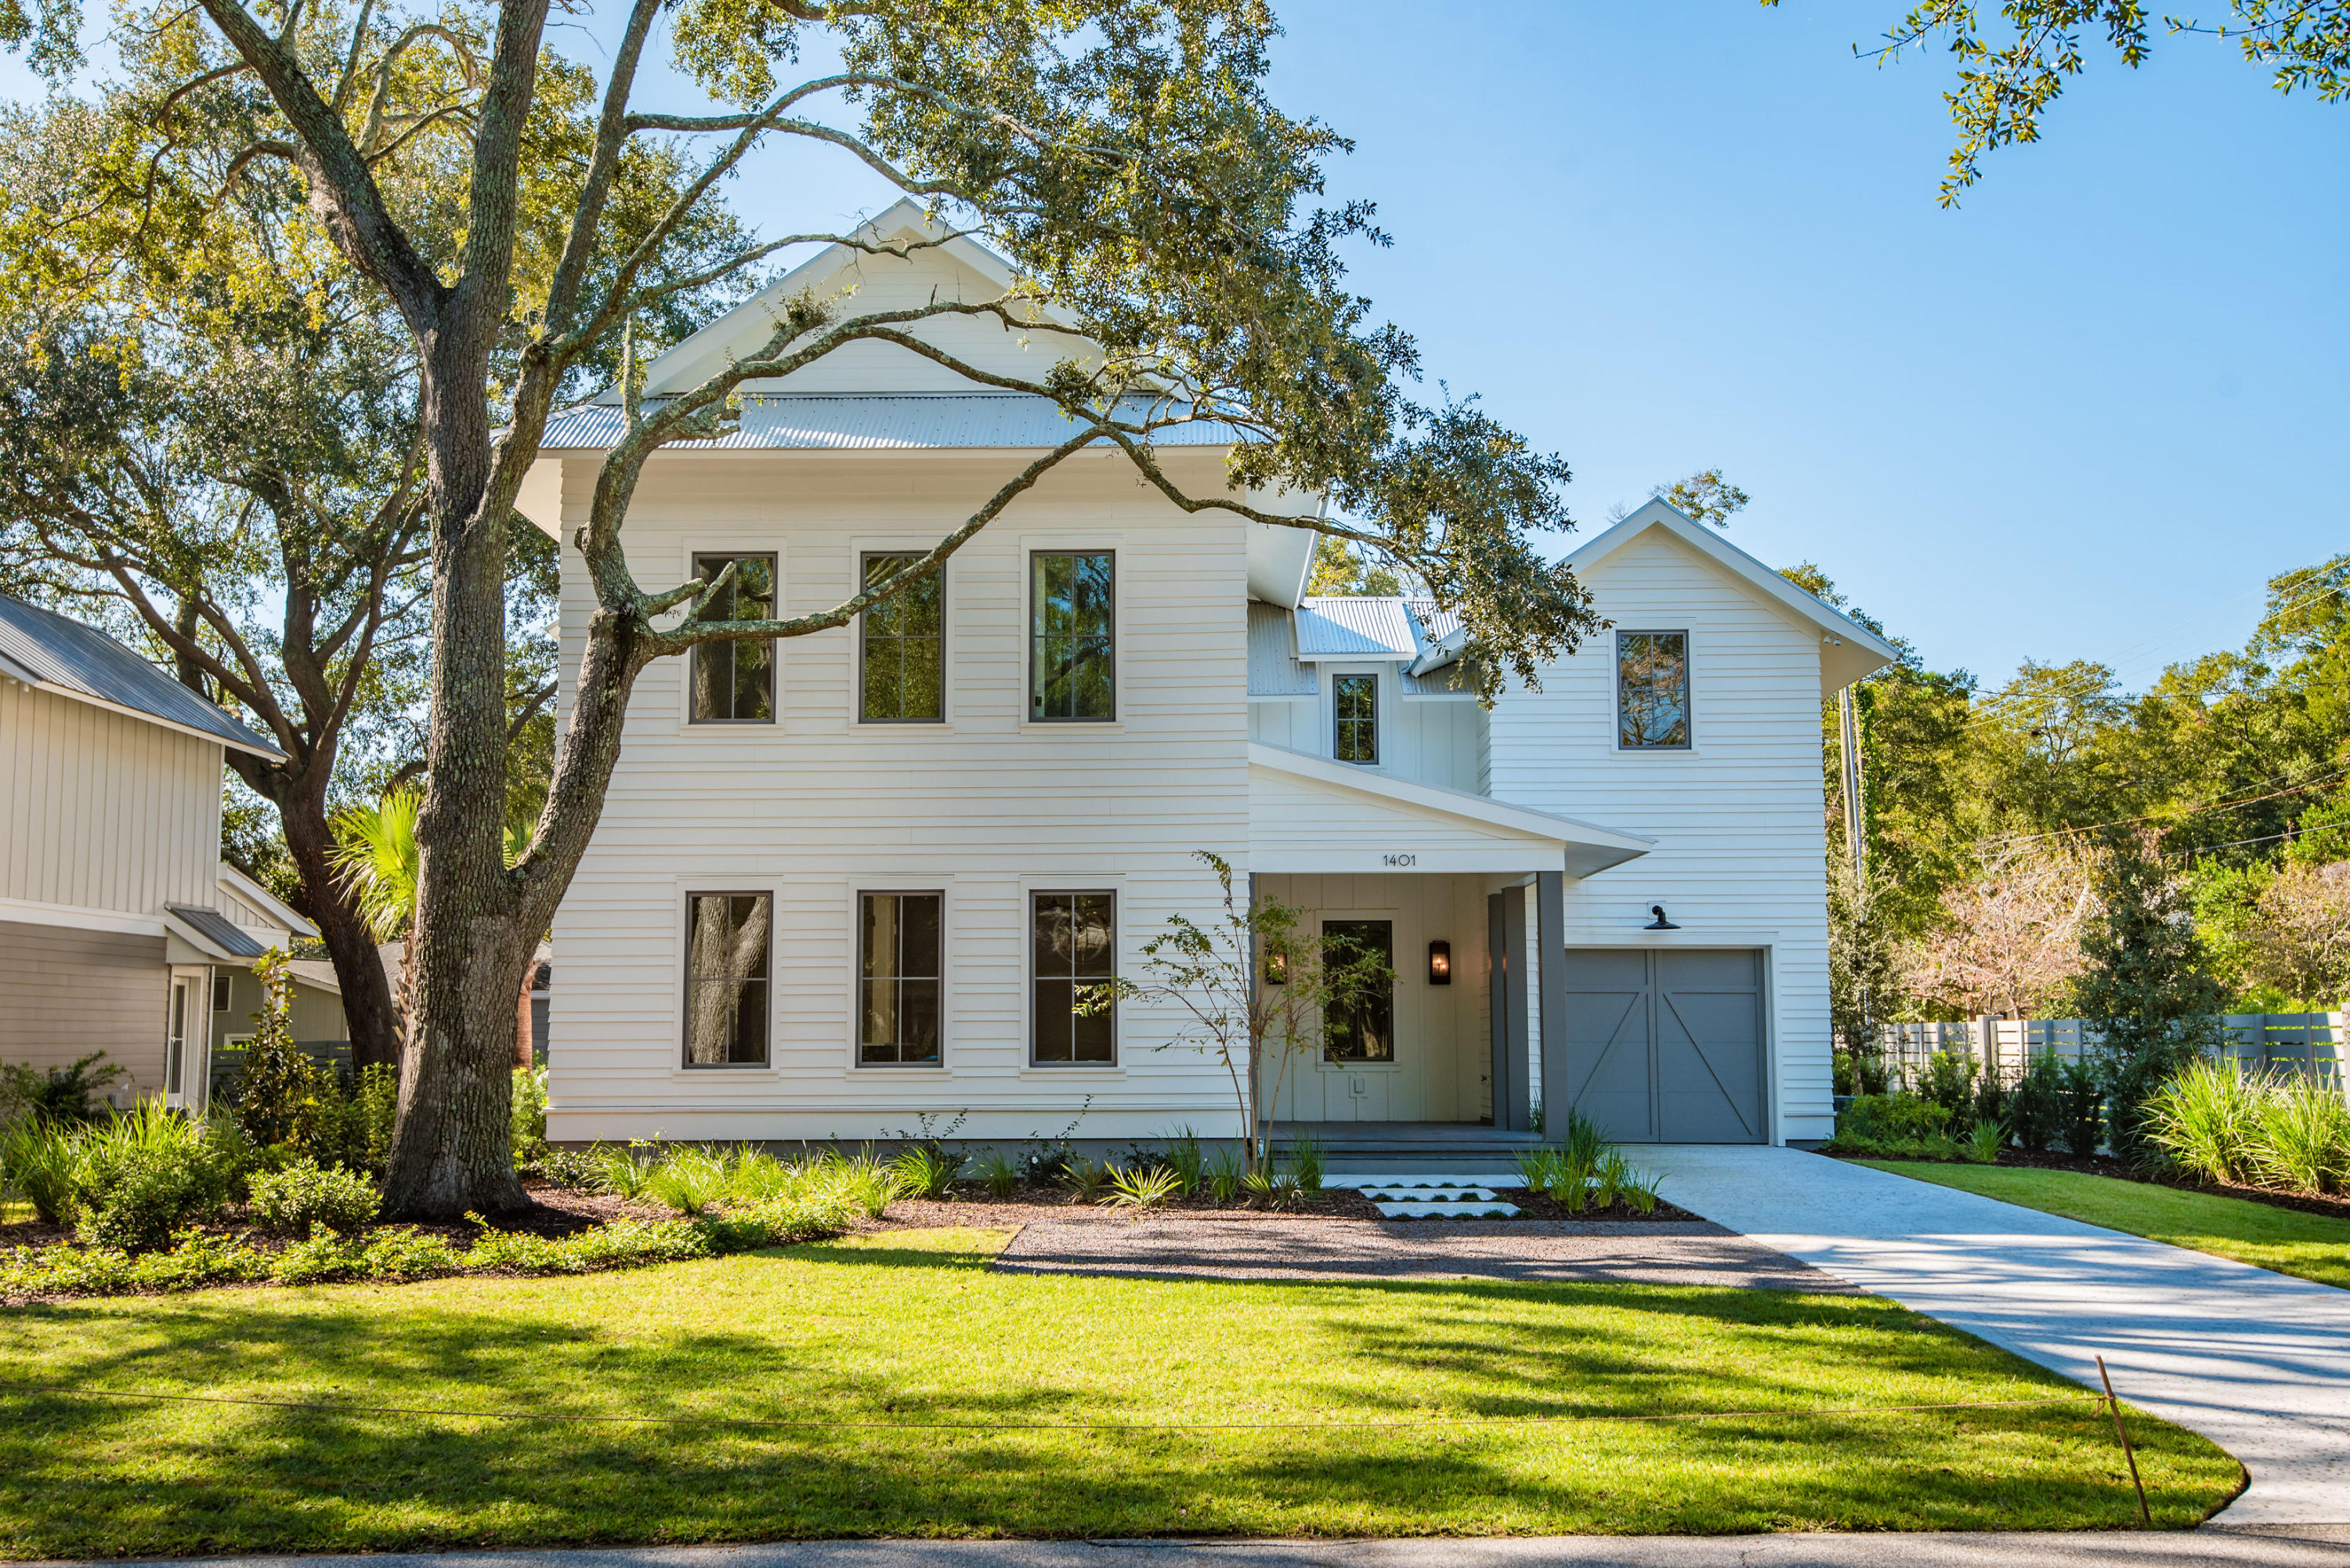 Old Mt Pleasant Homes For Sale - 1401 Mataoka, Mount Pleasant, SC - 26